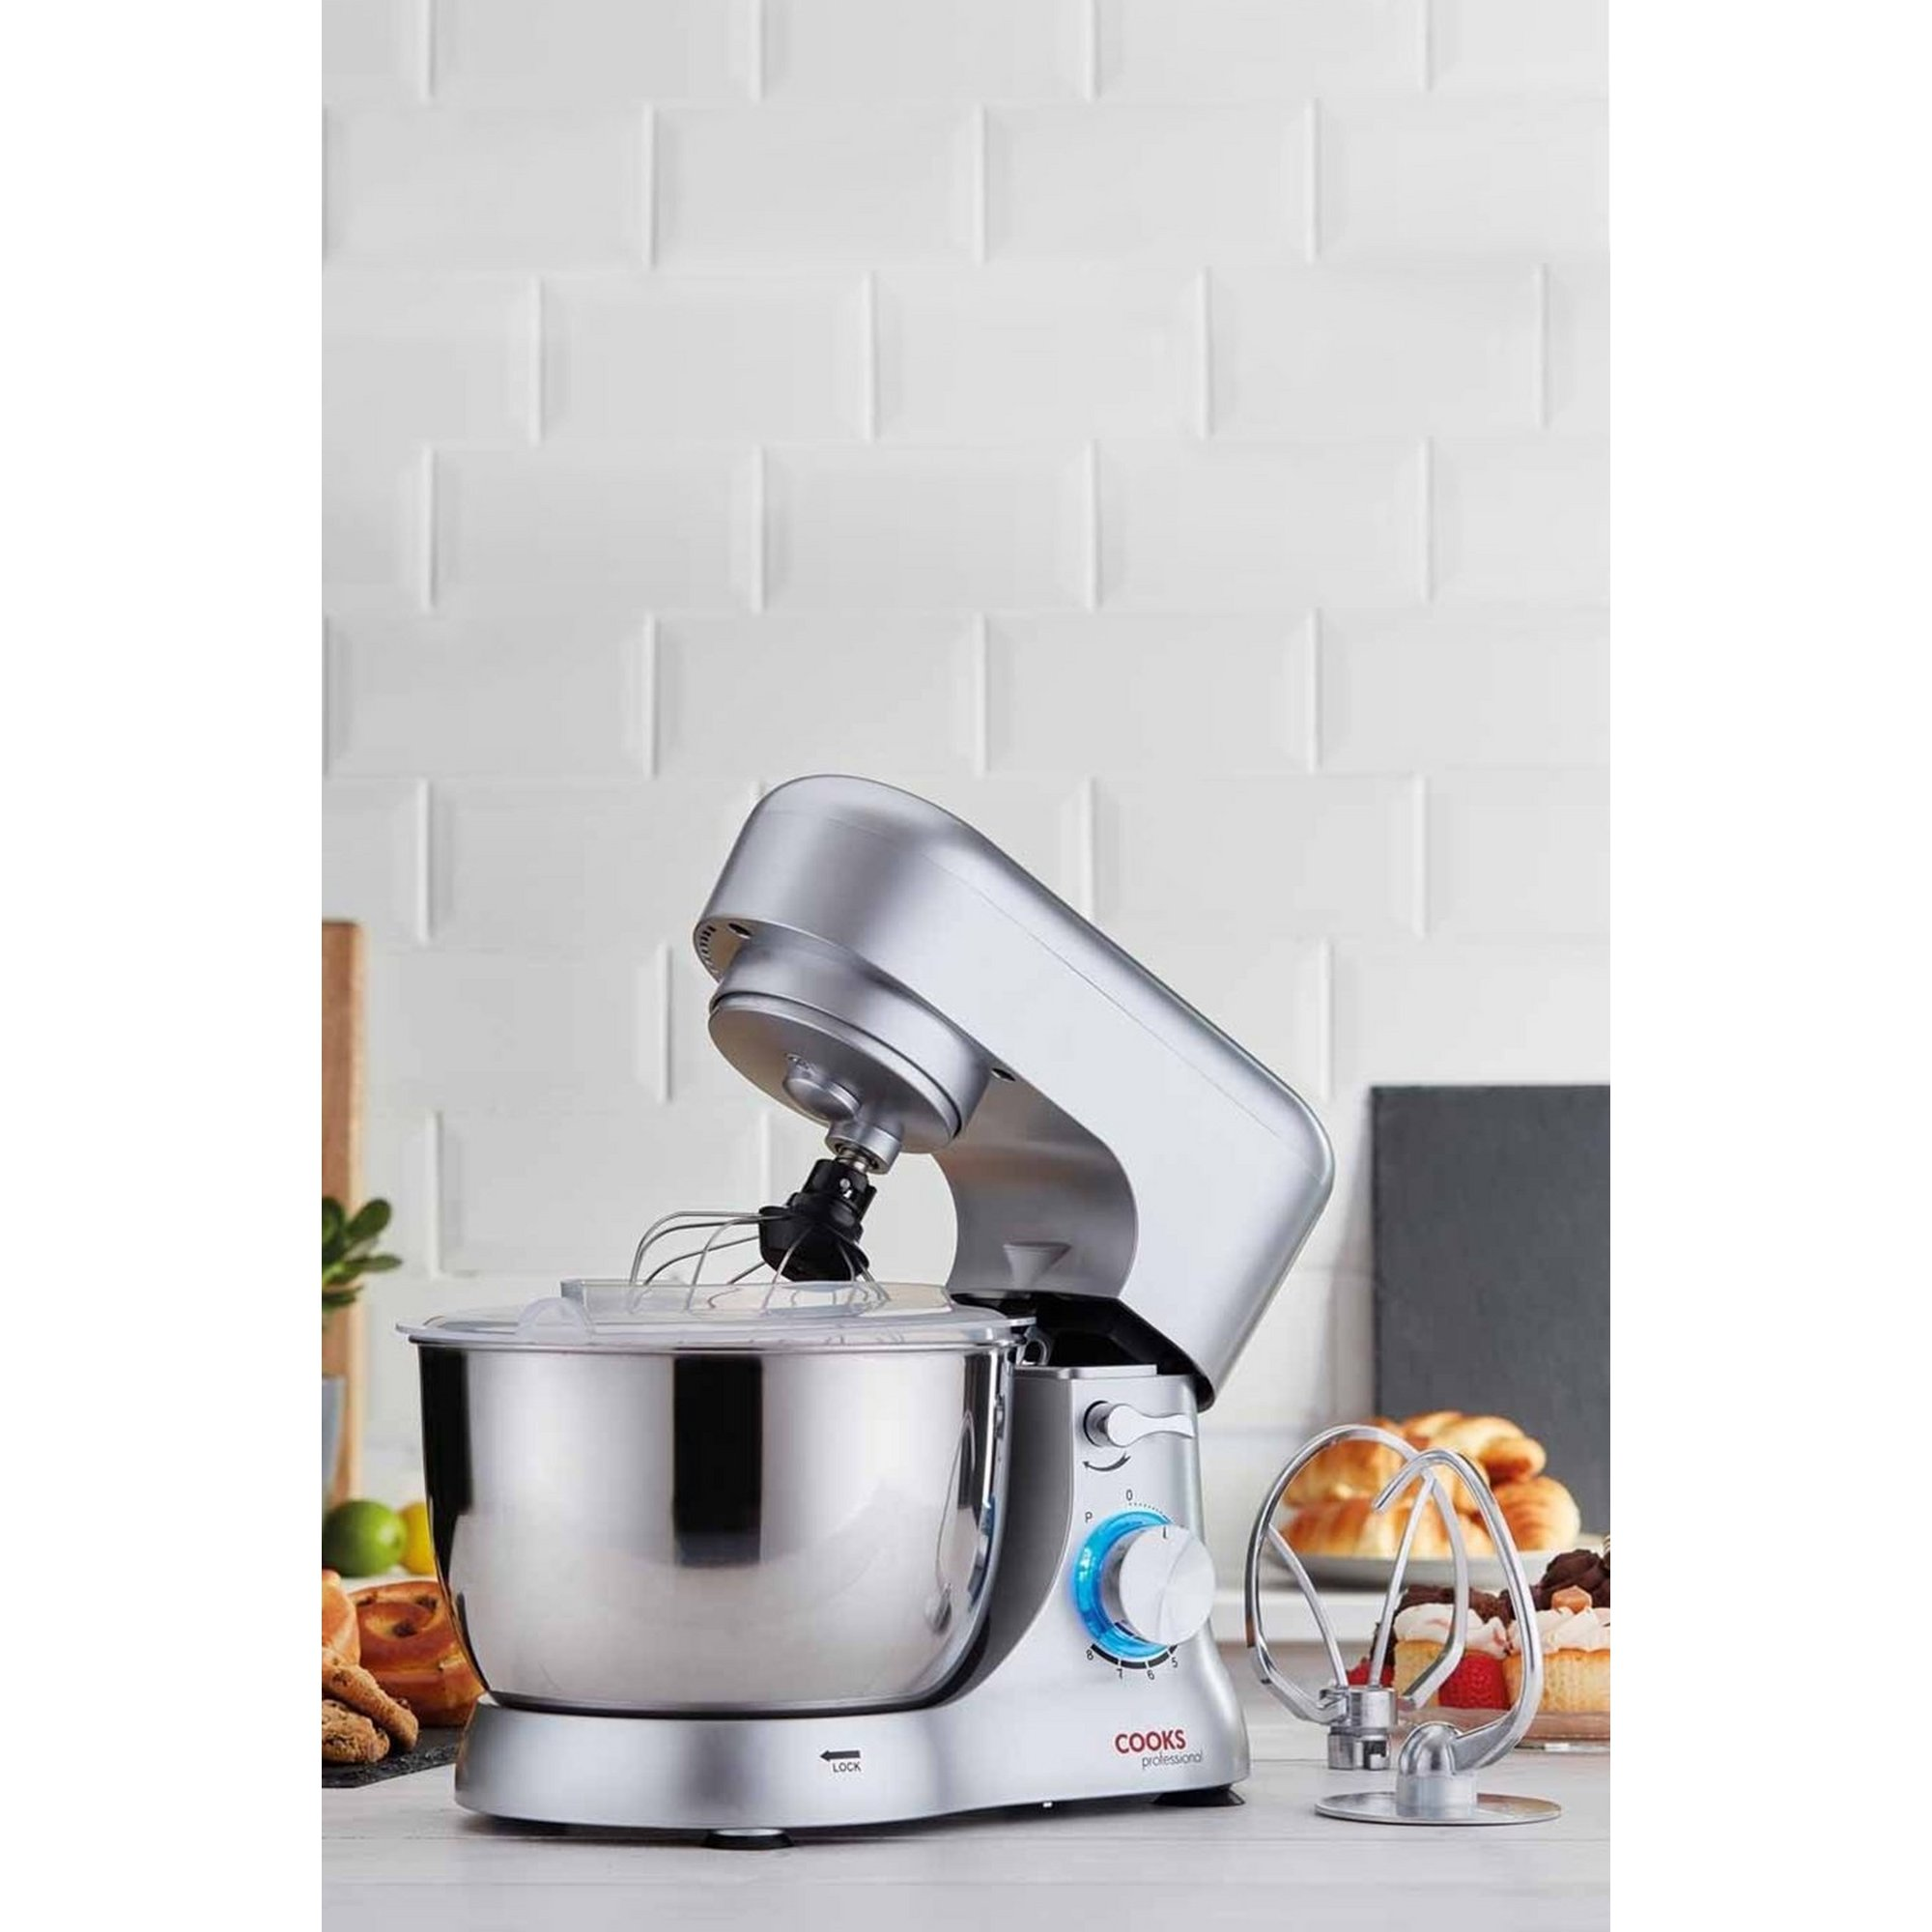 Image of Cooks Professional 1000W Stand Mixer